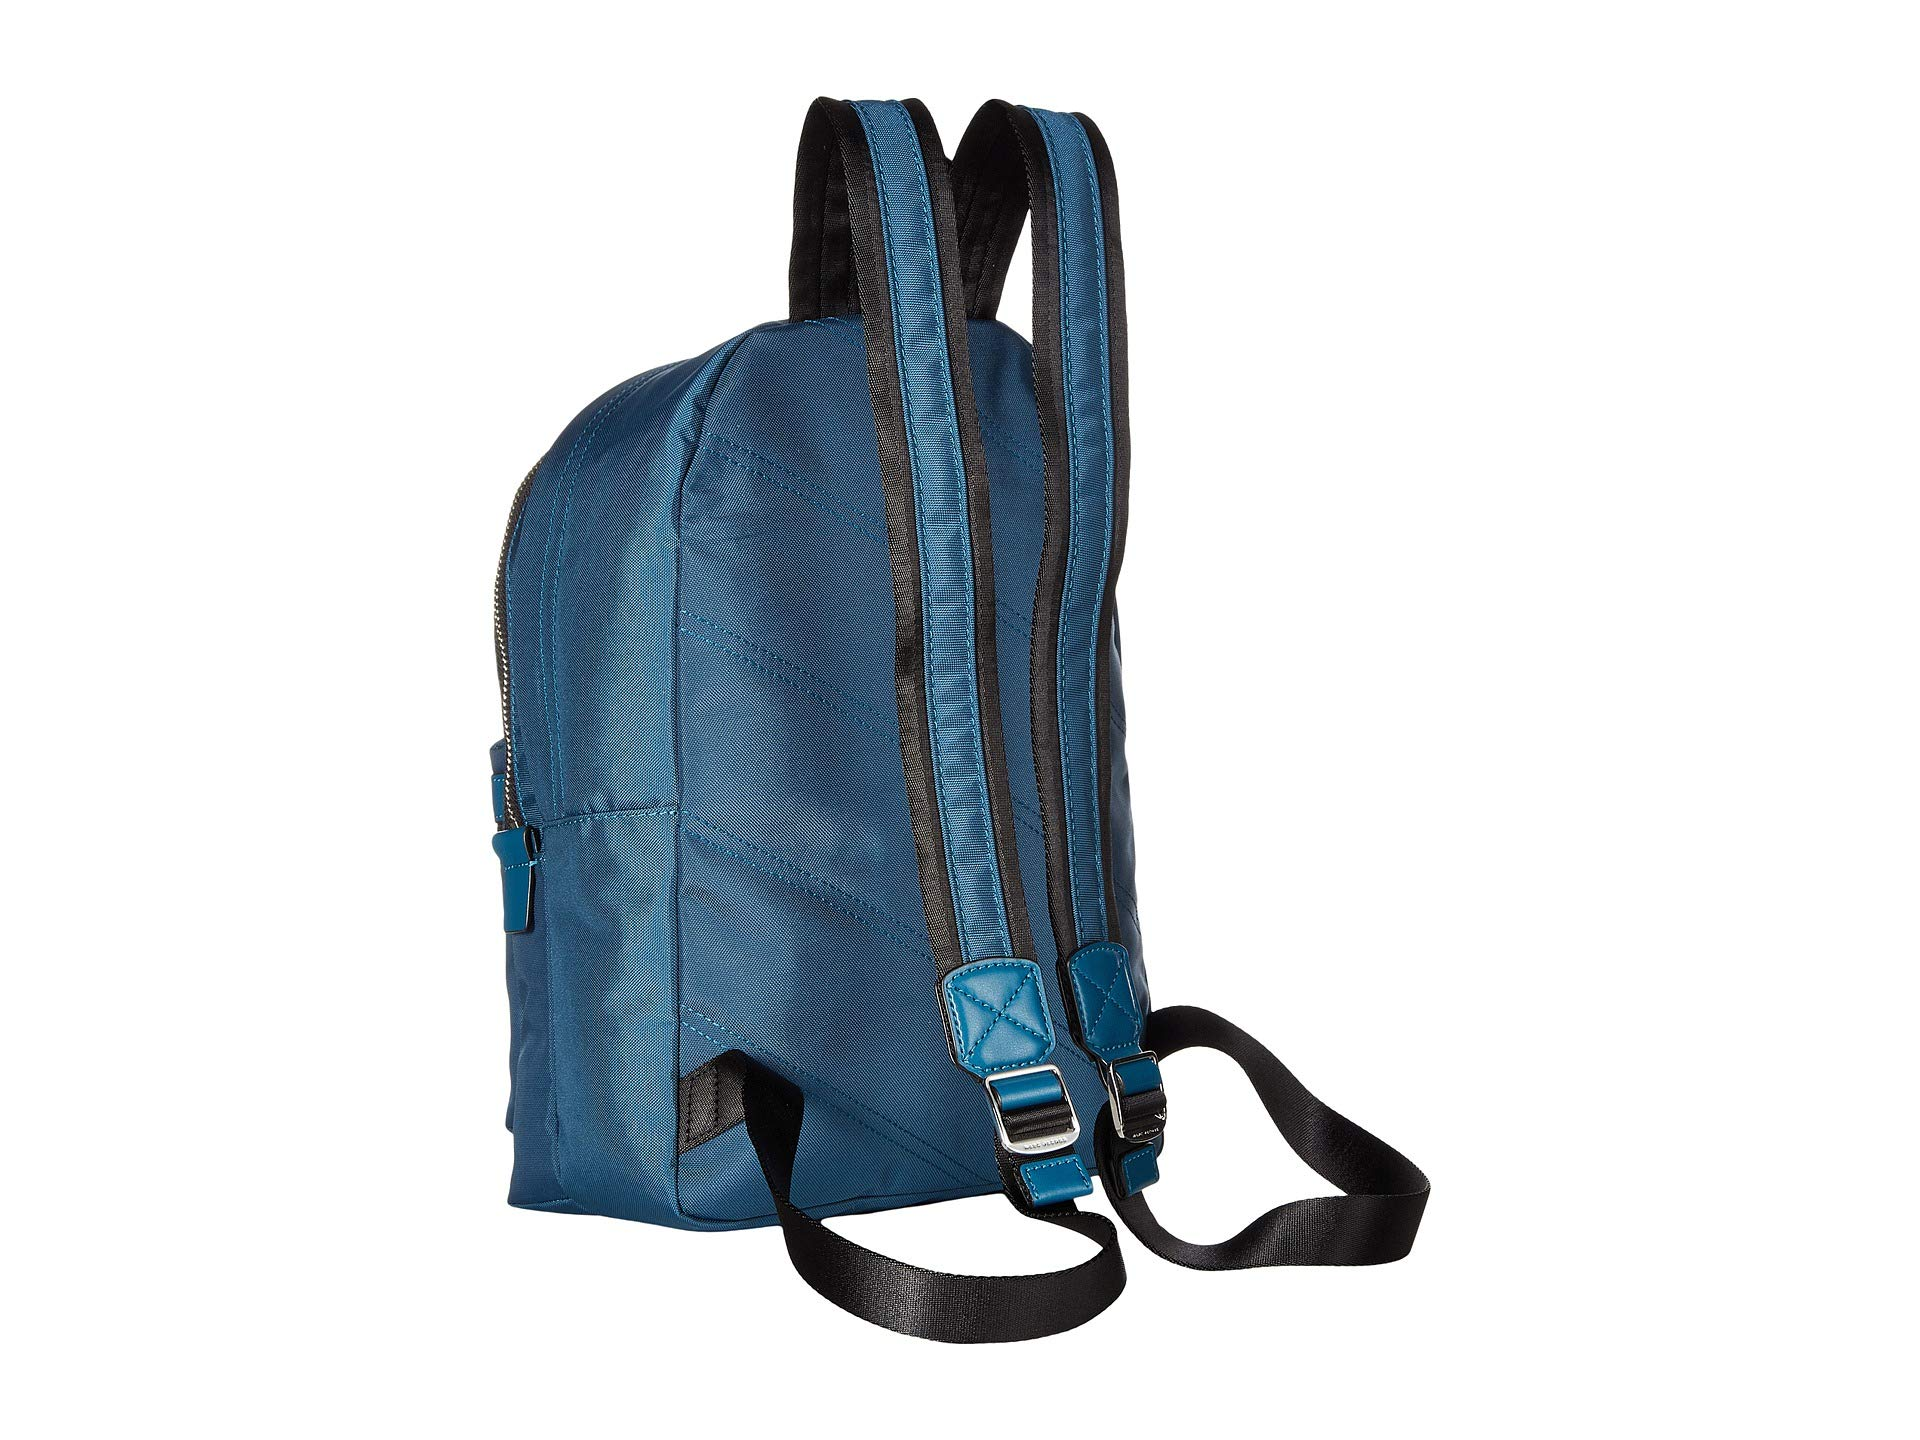 Teal Pack Exaggerated Trek Backpack Sport Logo Medium Marc Jacobs 8qZwEE1